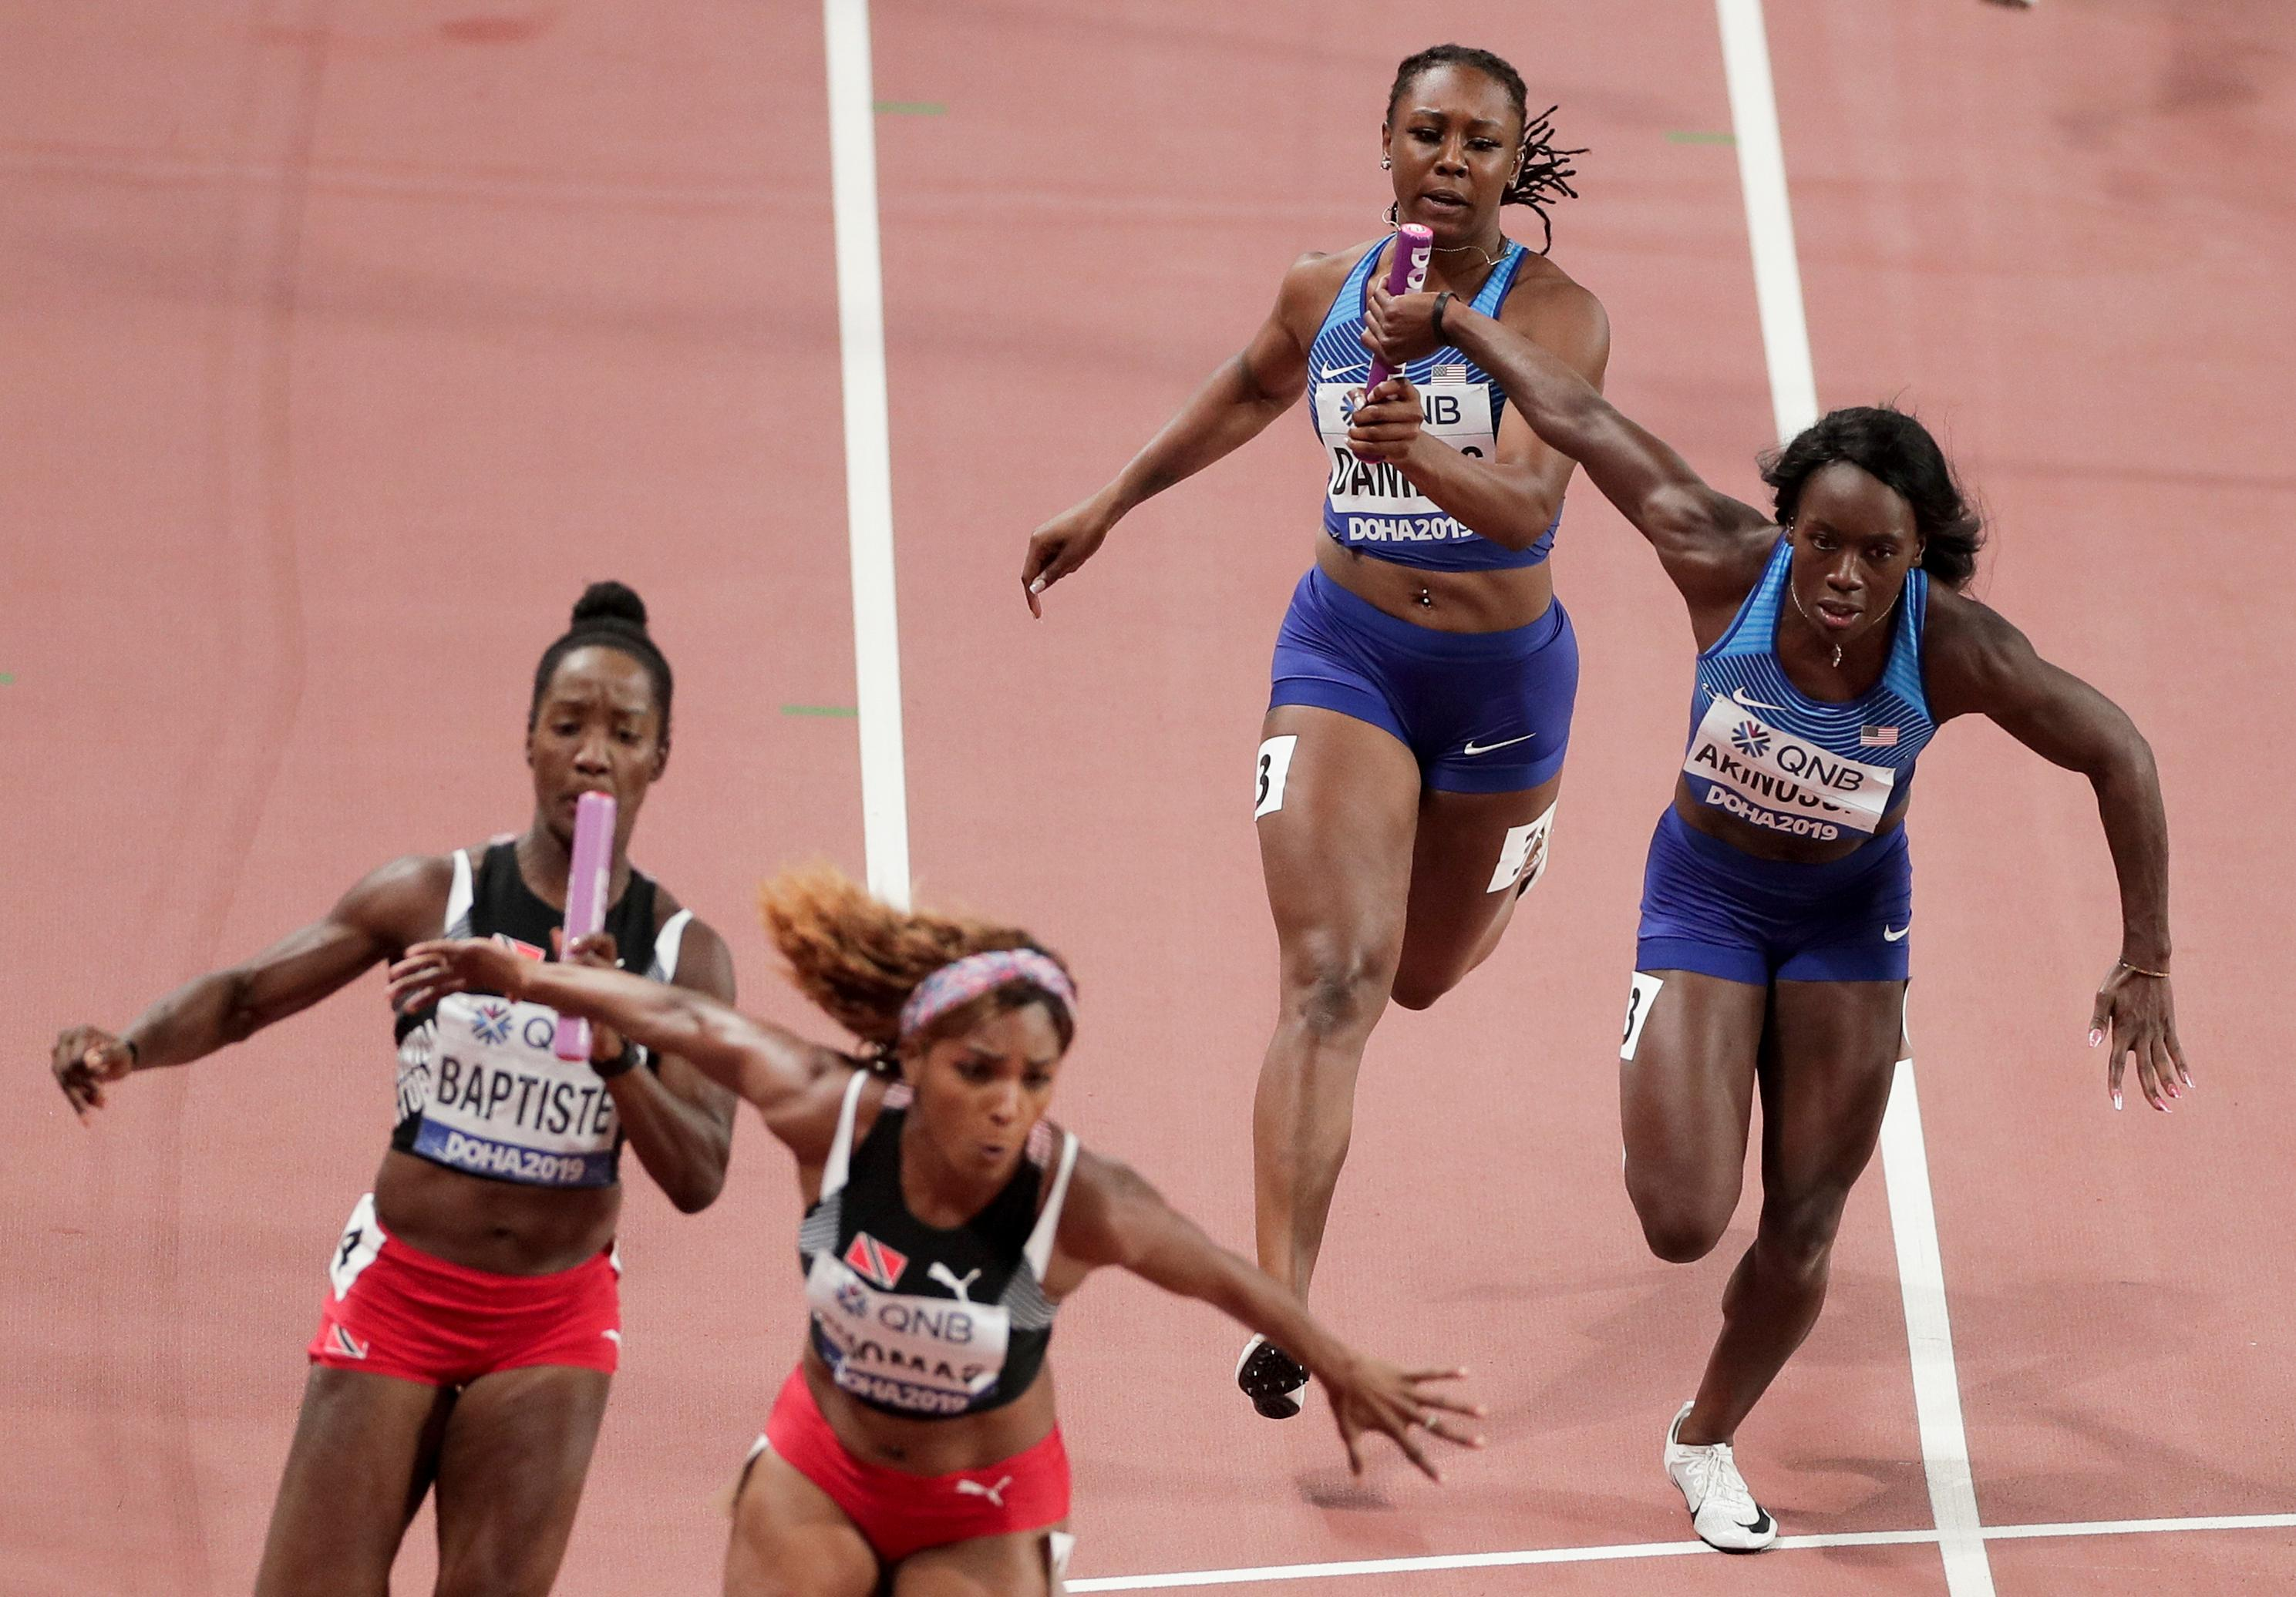 Teahna Daniels, right, of the United States hands off to Morolake Akinosun in the women's 4x100 meter relay semifinal at the World Athletics Championships in Doha, Qatar, Friday, Oct. 4, 2019. (AP Photo/Nariman El-Mofty)